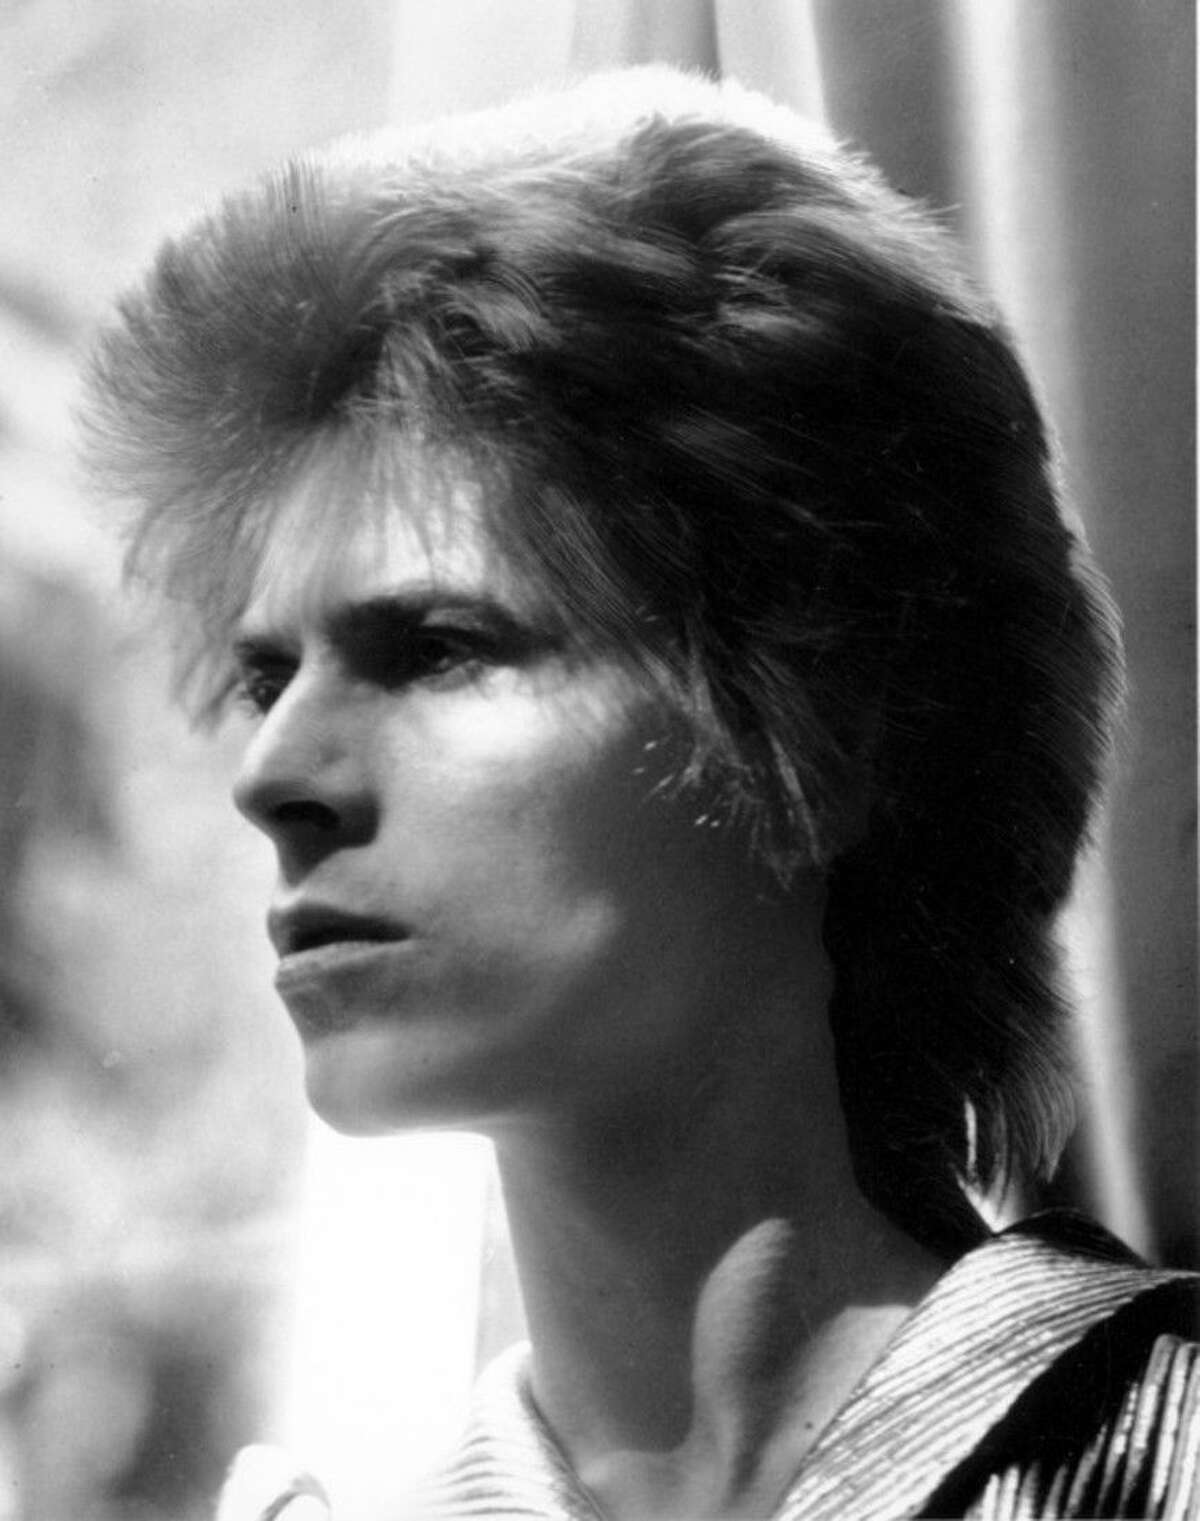 FILE - This is an Oct. 1972 file photo of British singer David Bowie. Bowie, the other-worldly musician who broke pop and rock boundaries with his creative musicianship, nonconformity, striking visuals and a genre-bending persona he christened Ziggy Stardust, died of cancer Sunday Jan. 10, 2016. He was 69 and had just released a new album. (AP Photo/ File)